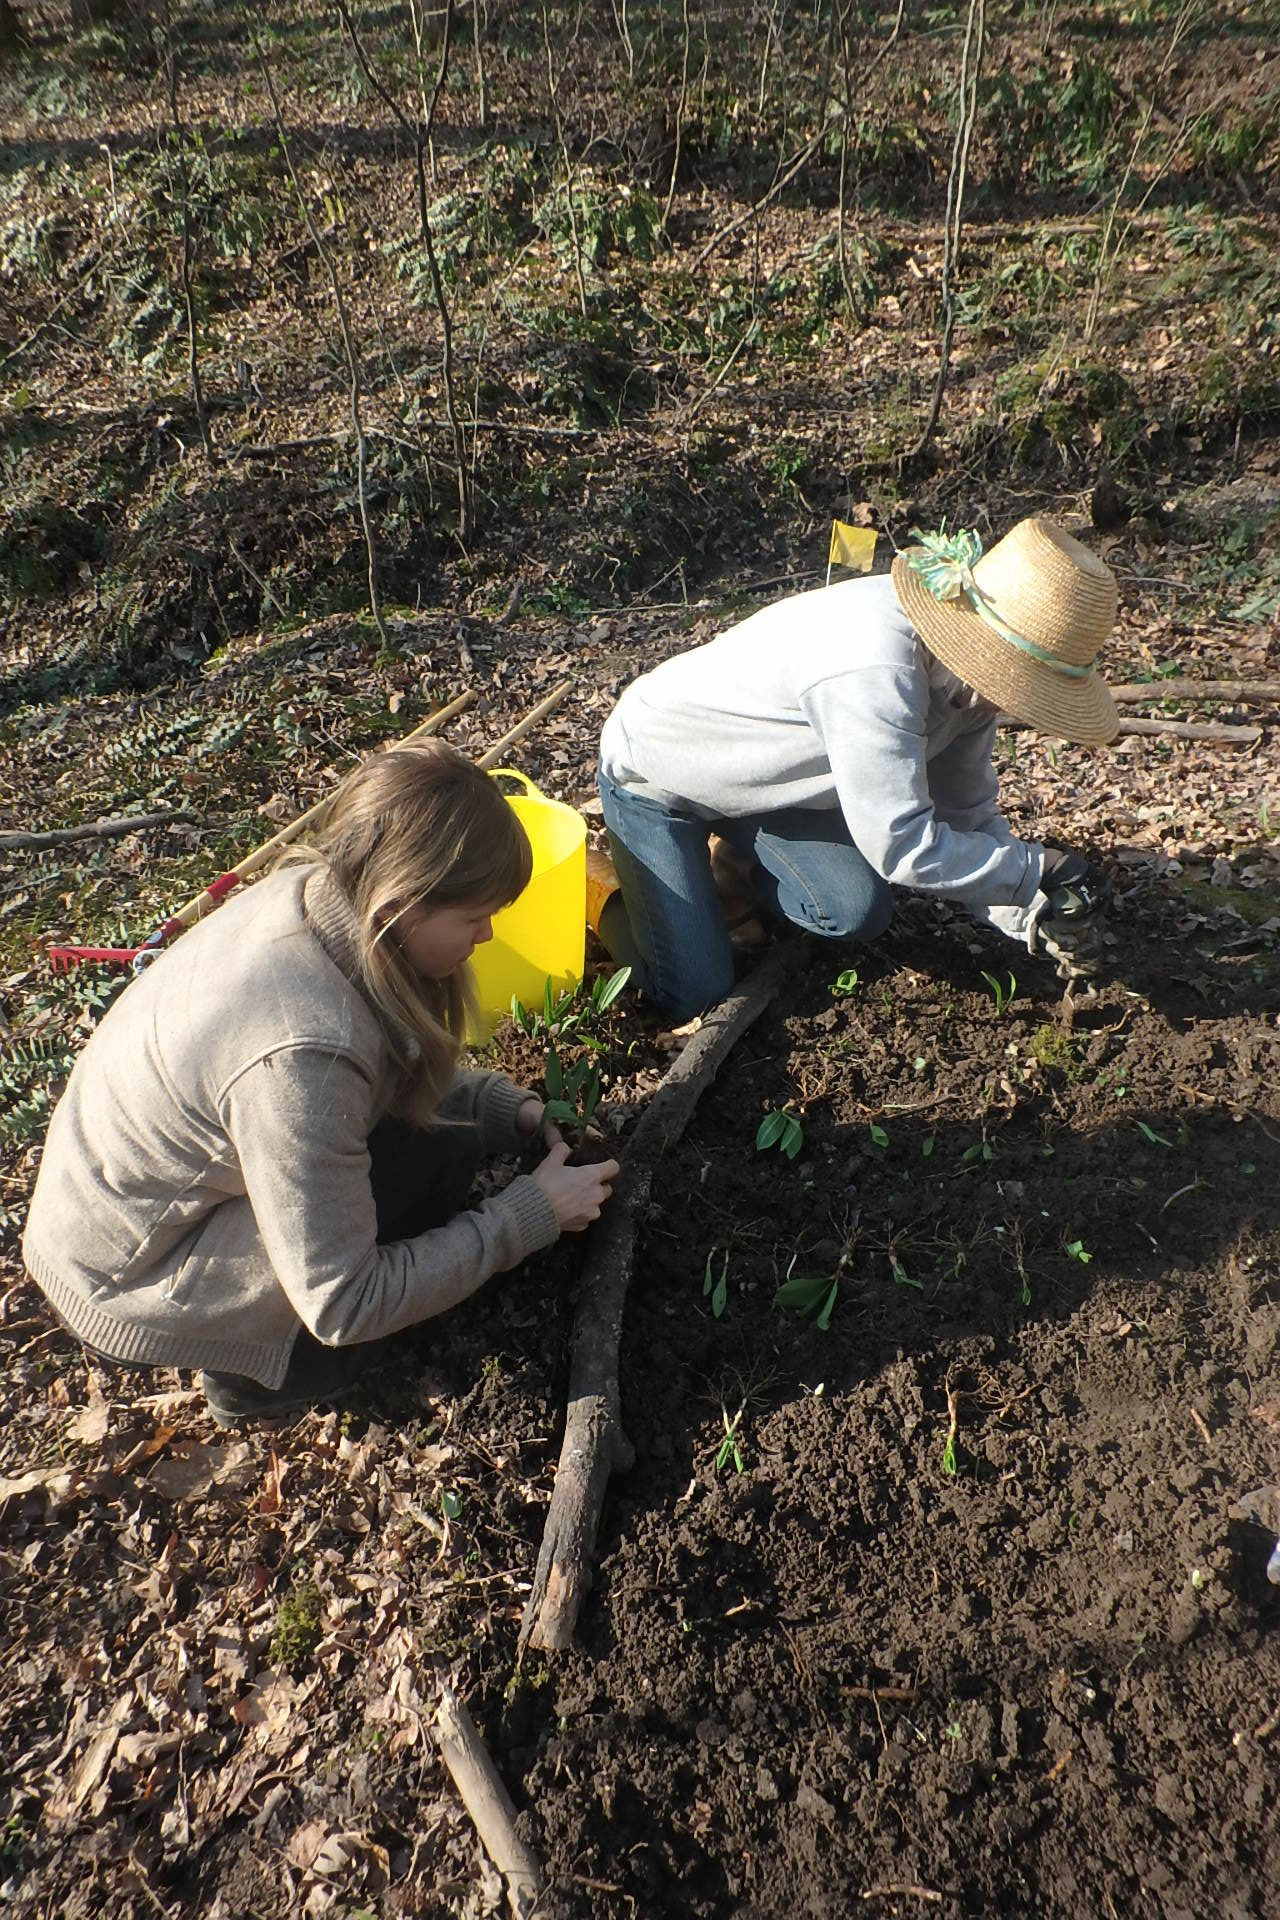 Two women planting ramps in the woods